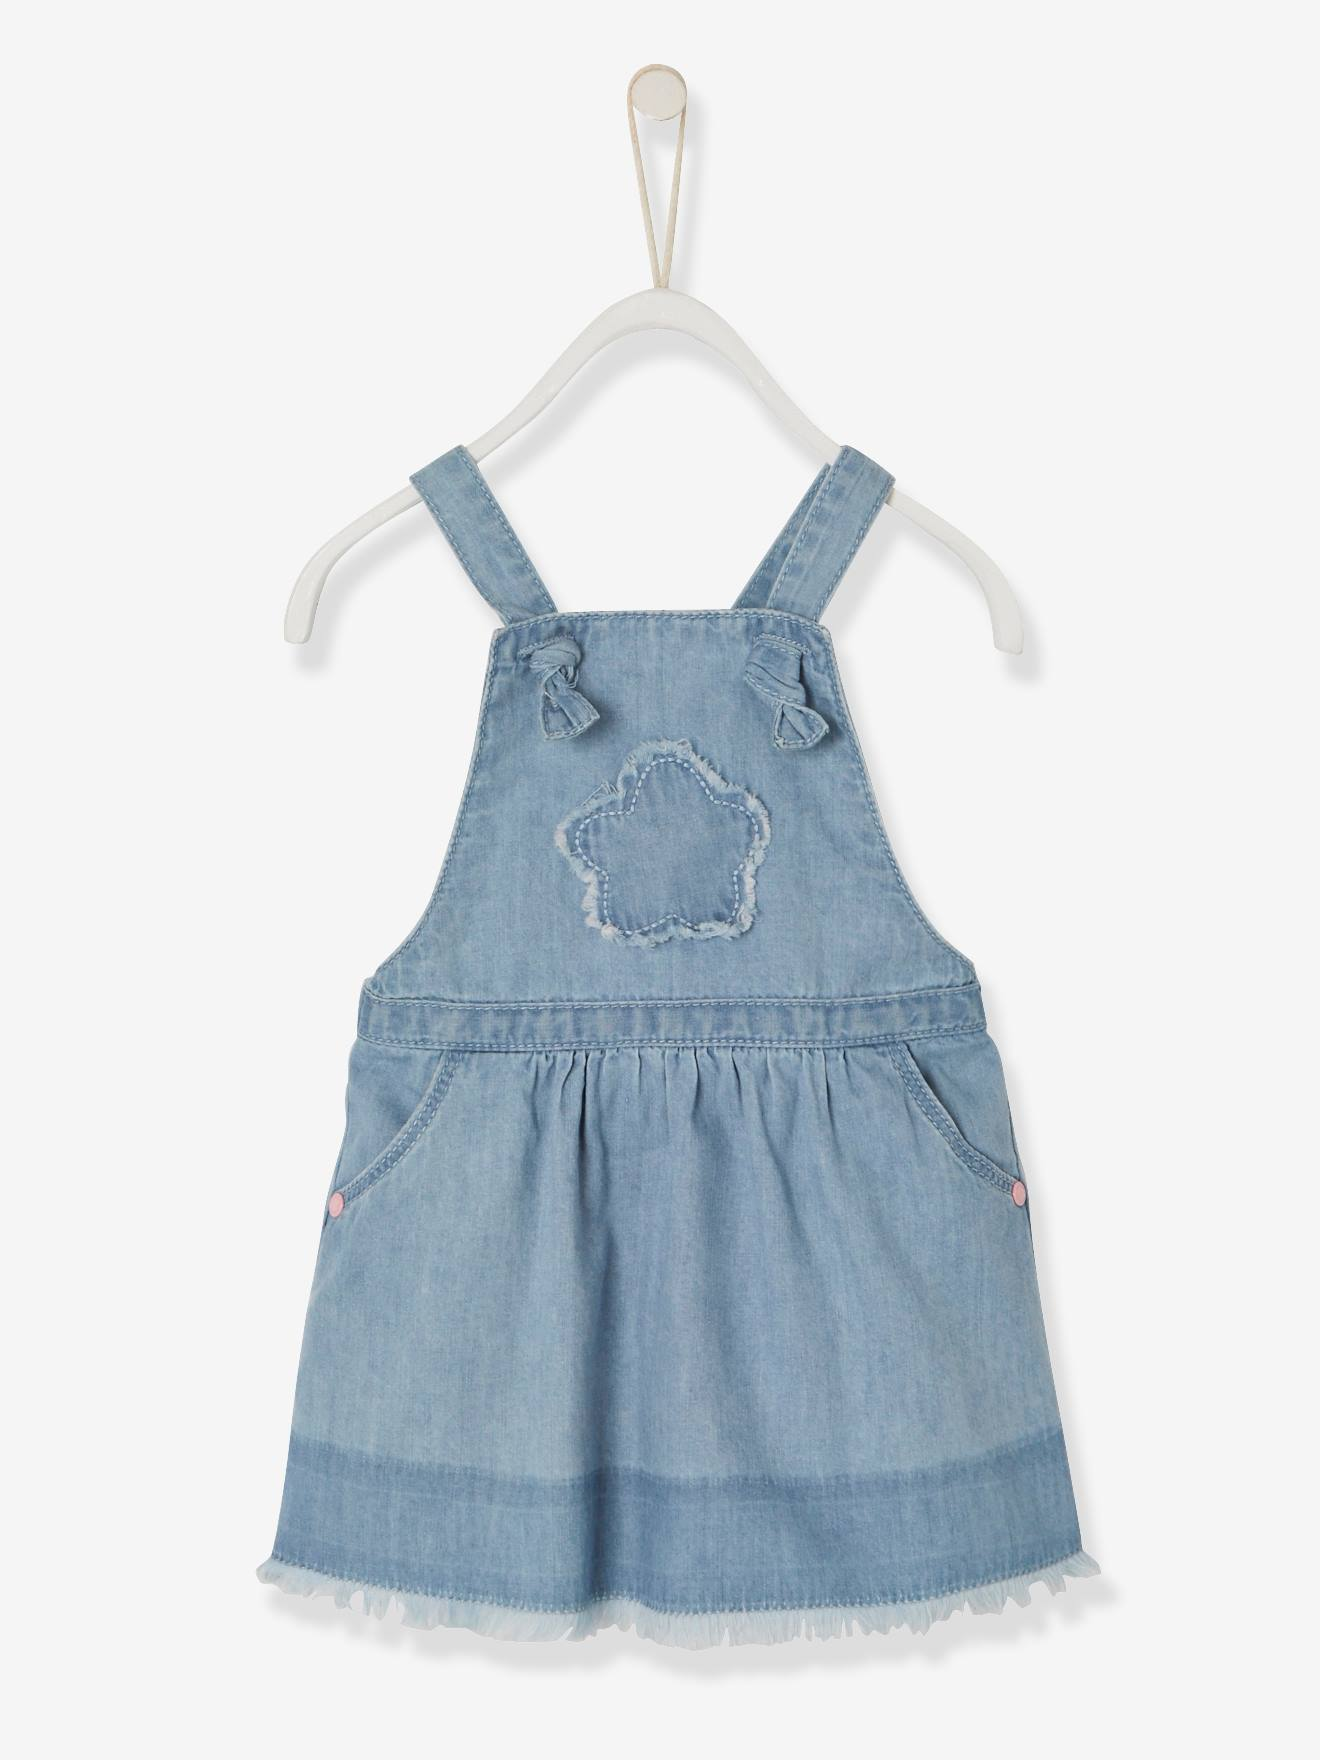 Baby Girls Denim Dress with Crossed Straps Baby